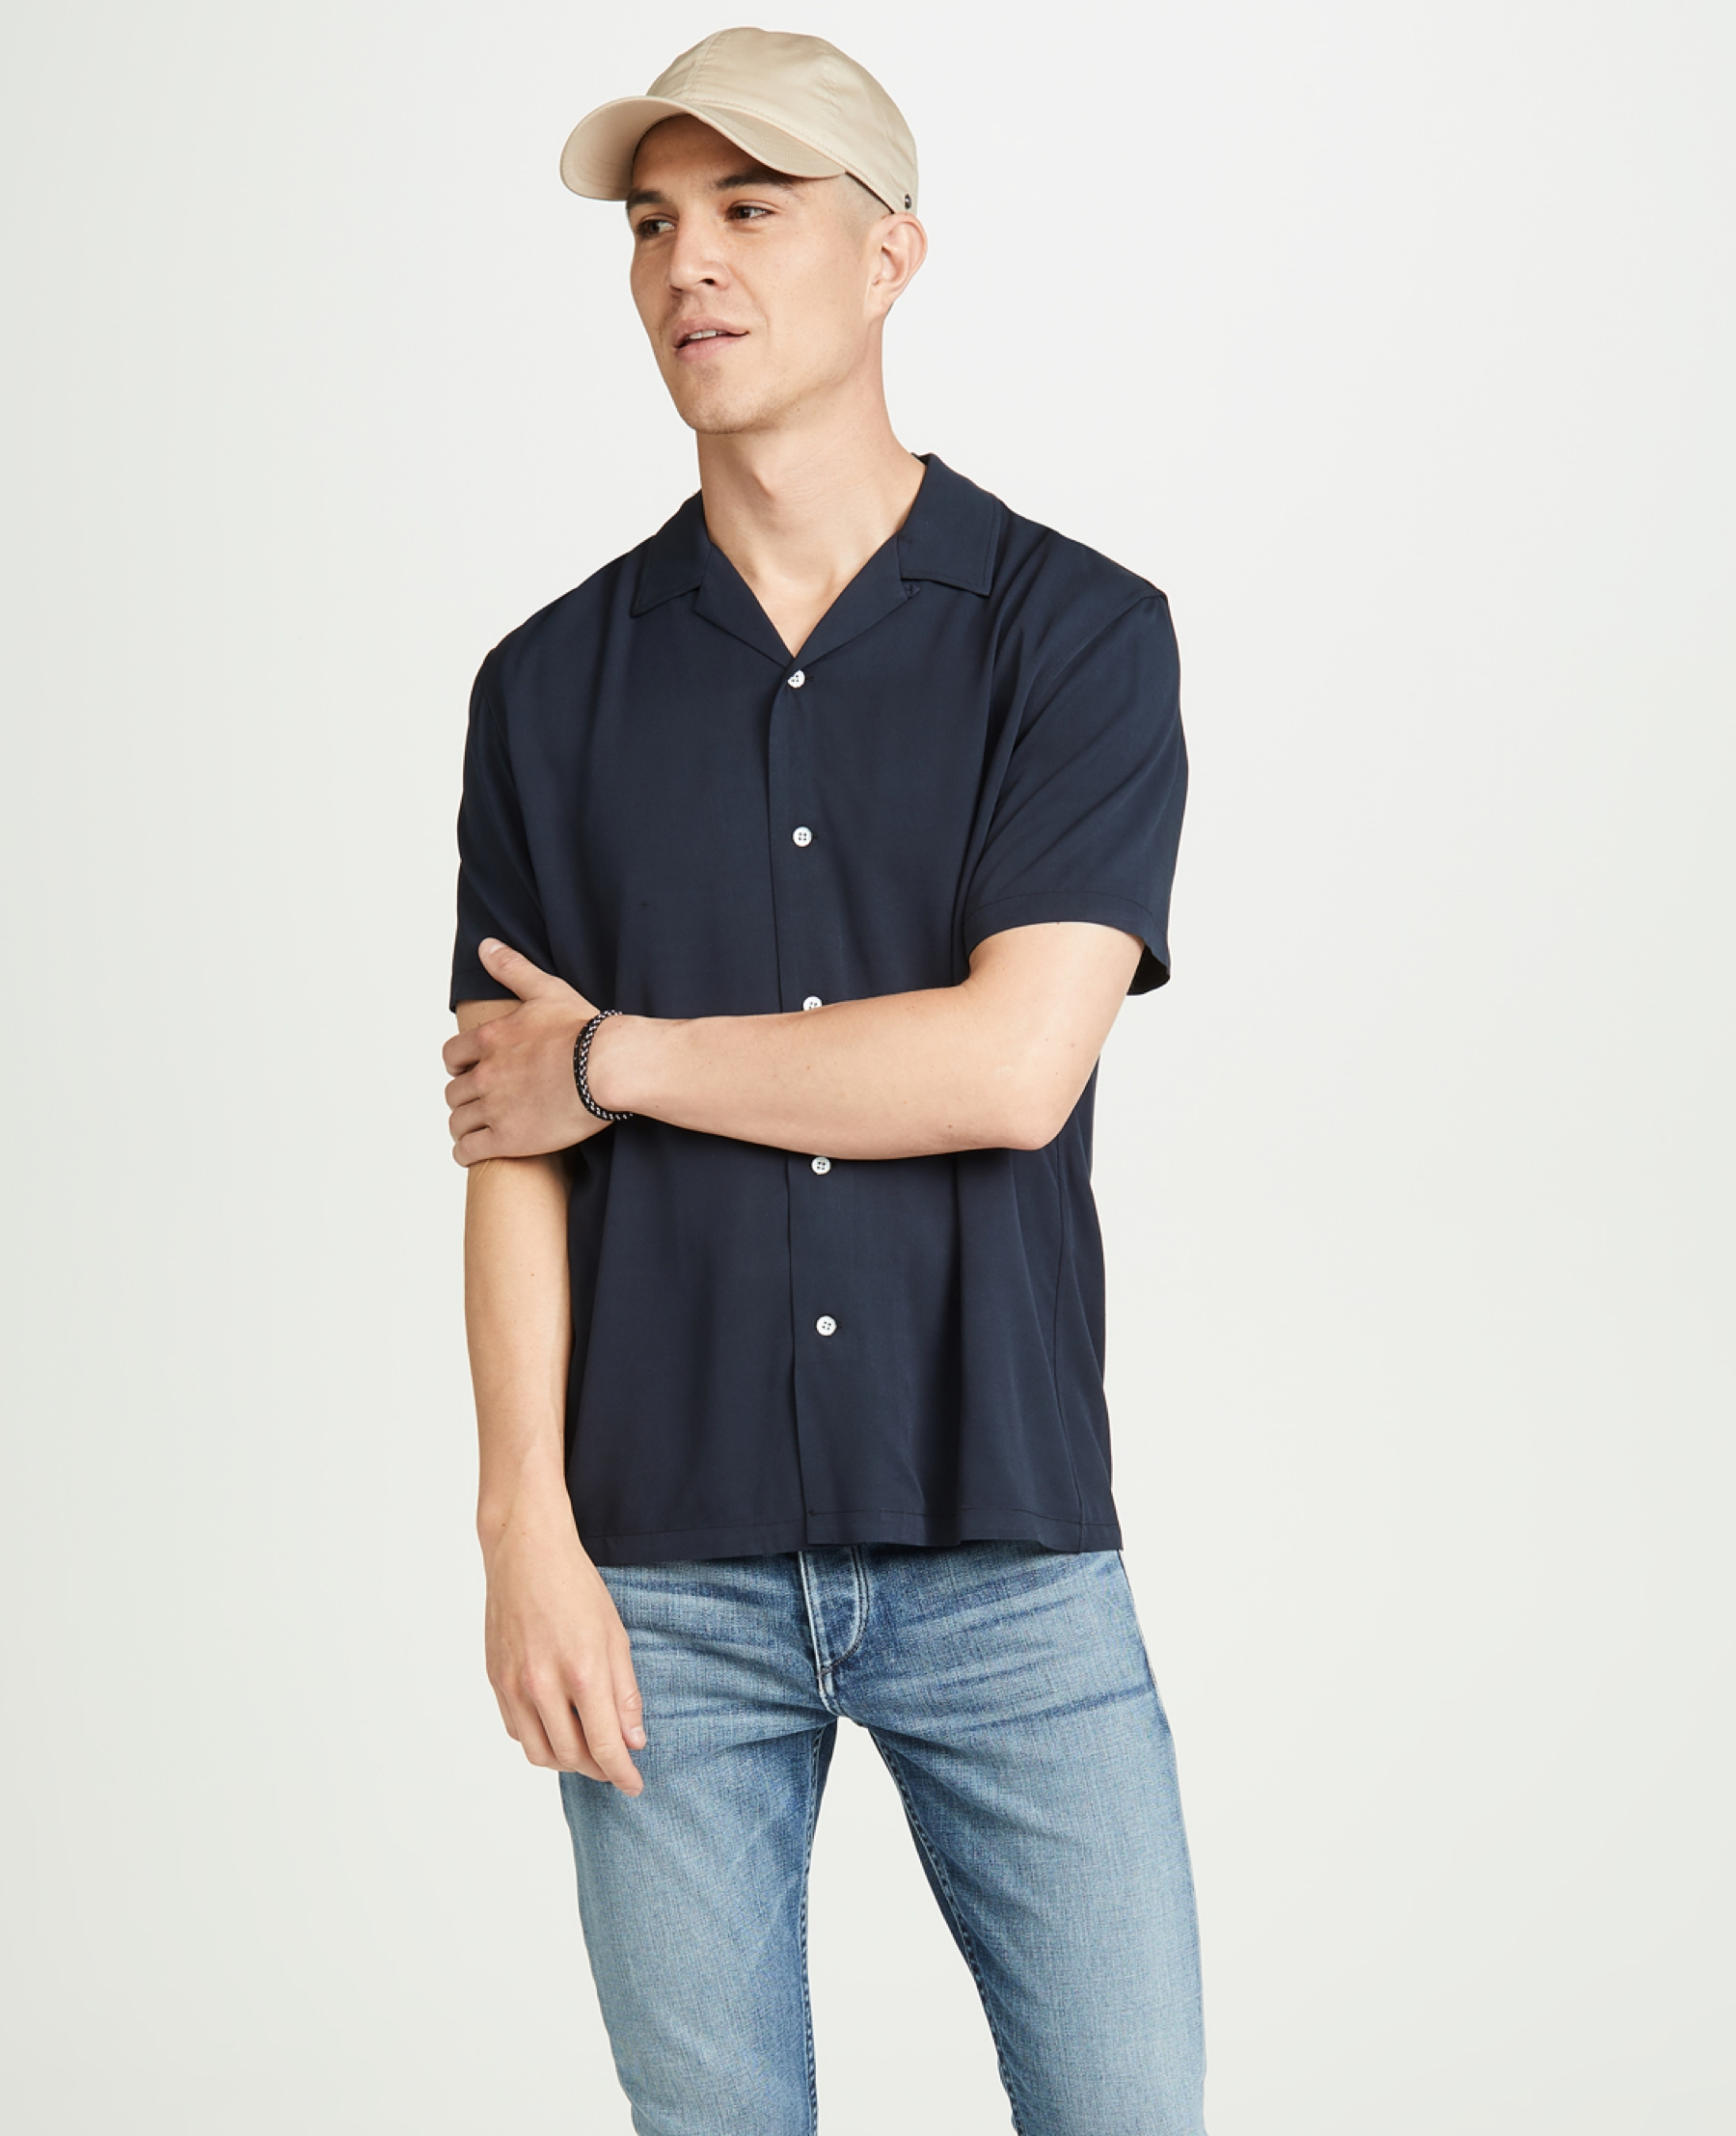 Solid color short sleeve shirts for summer